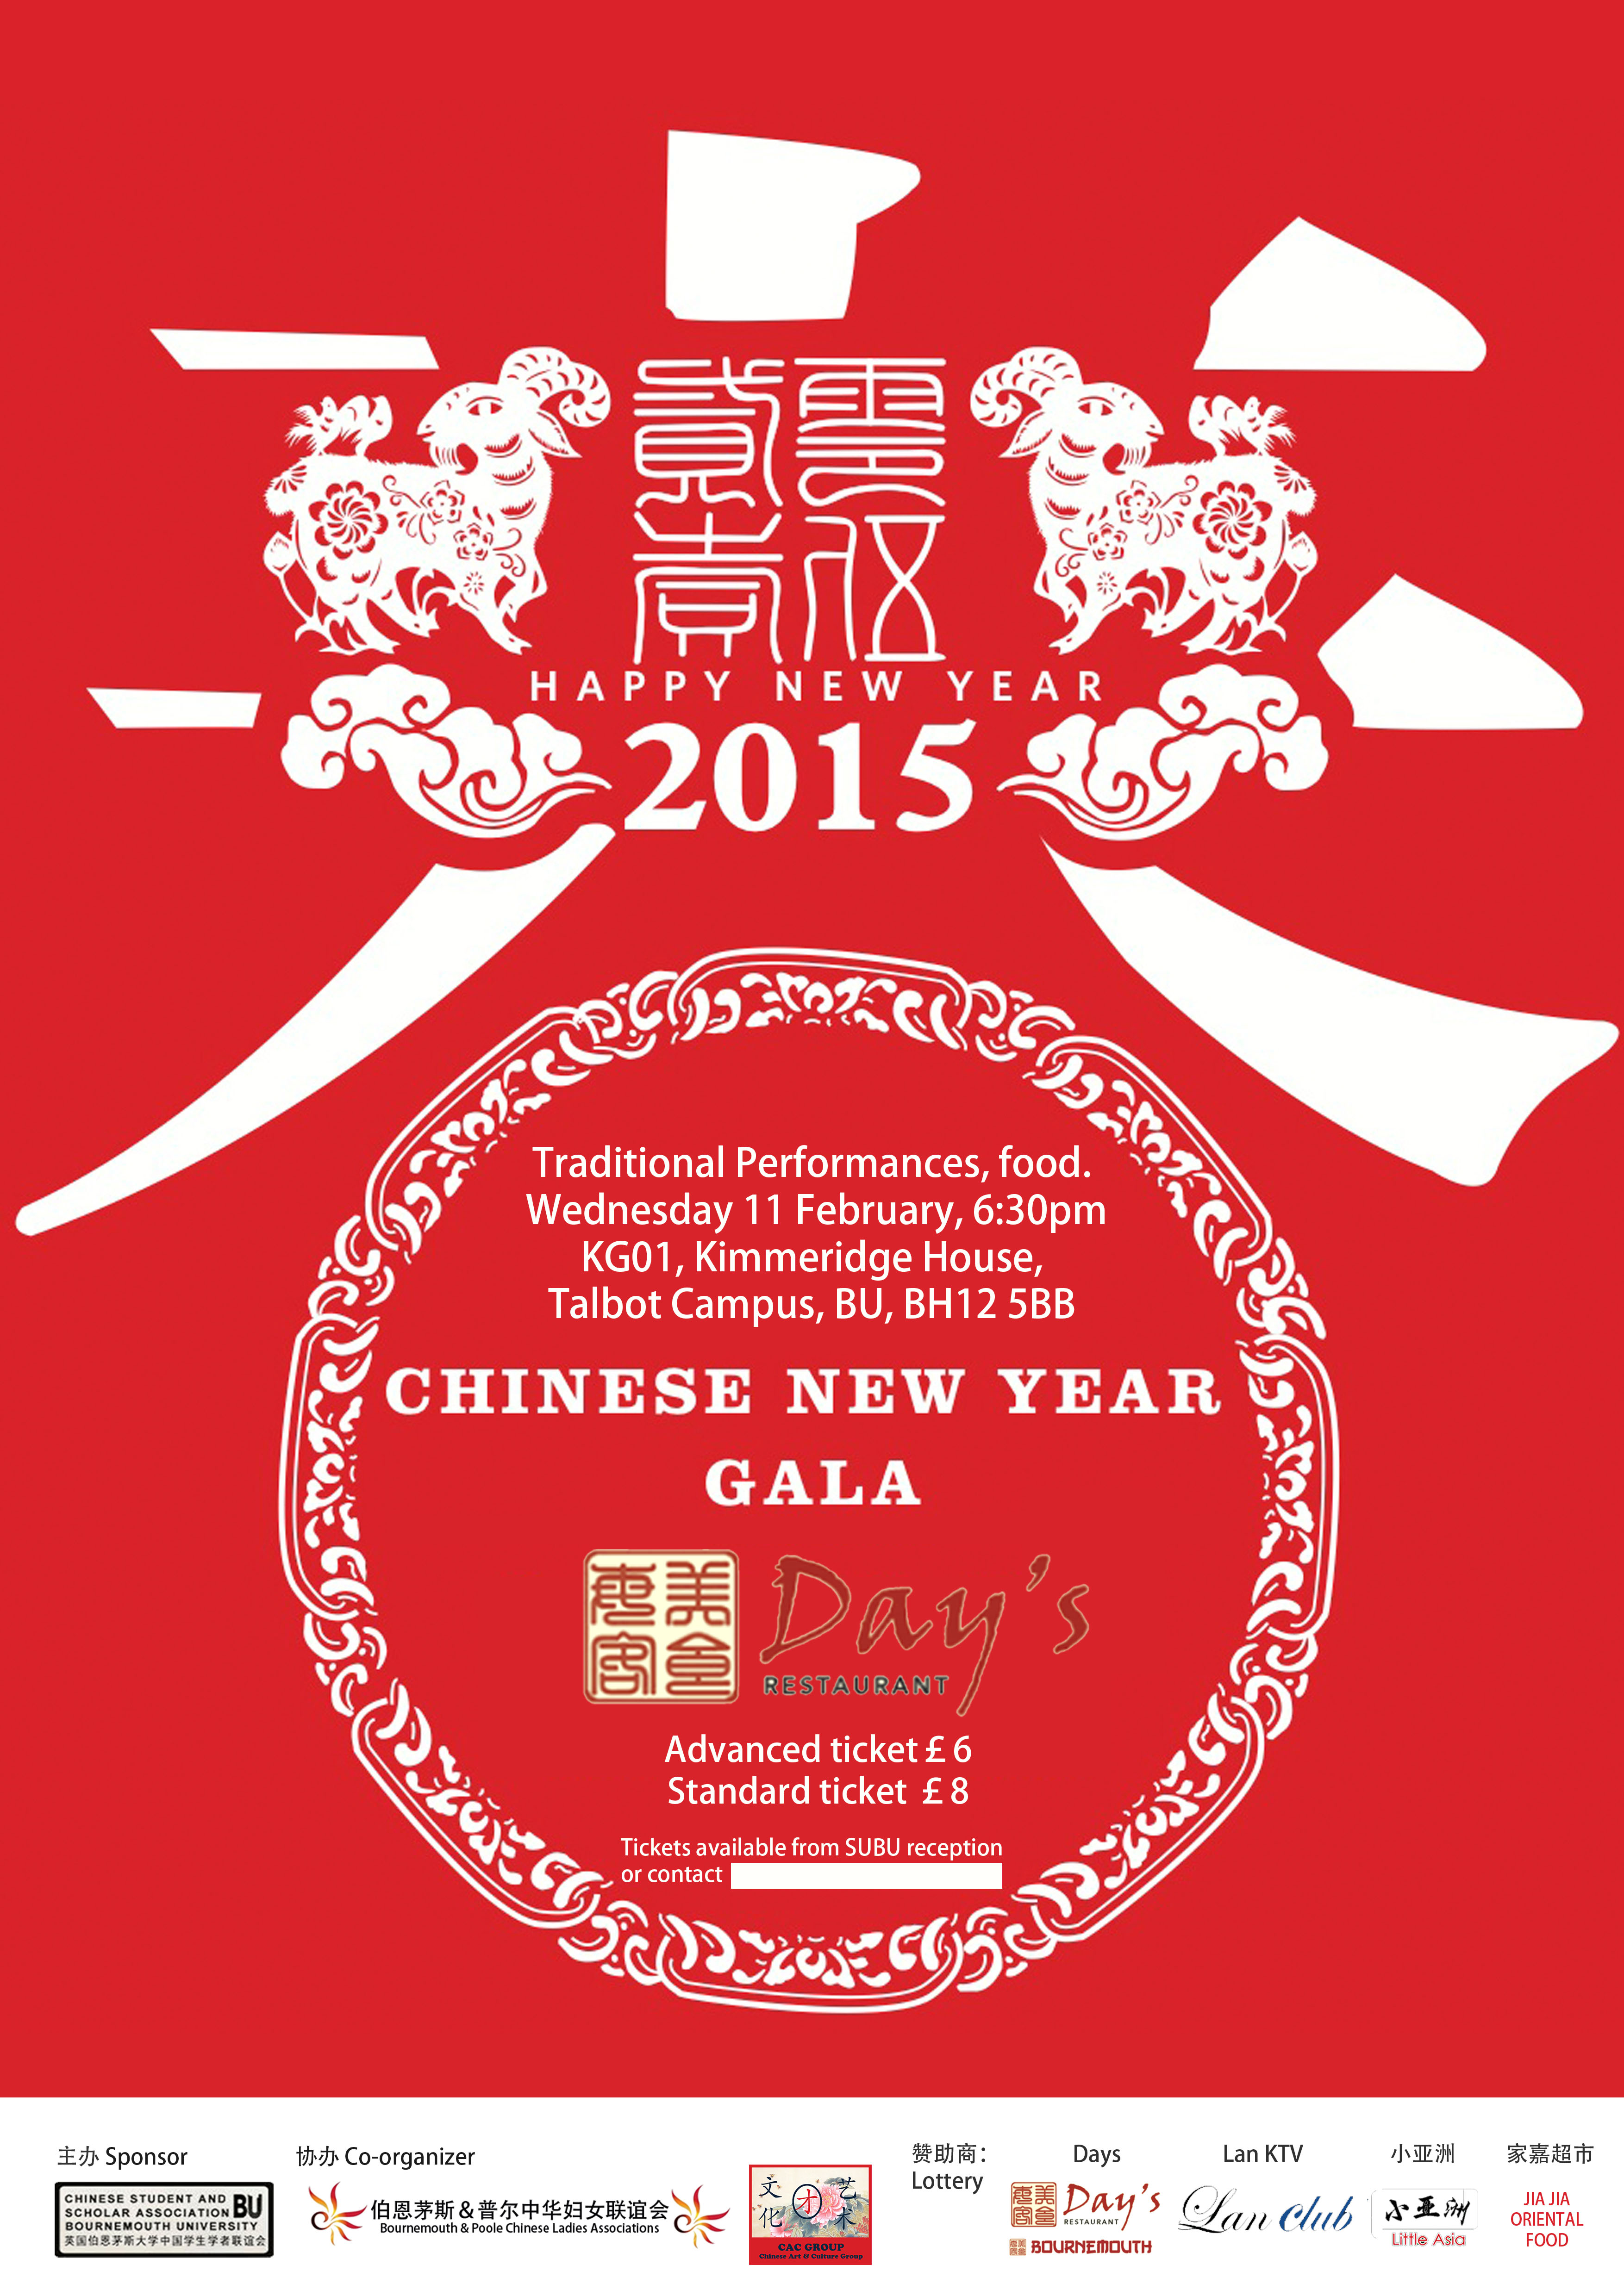 chinese new year poster - Chinese New Year Images 2015